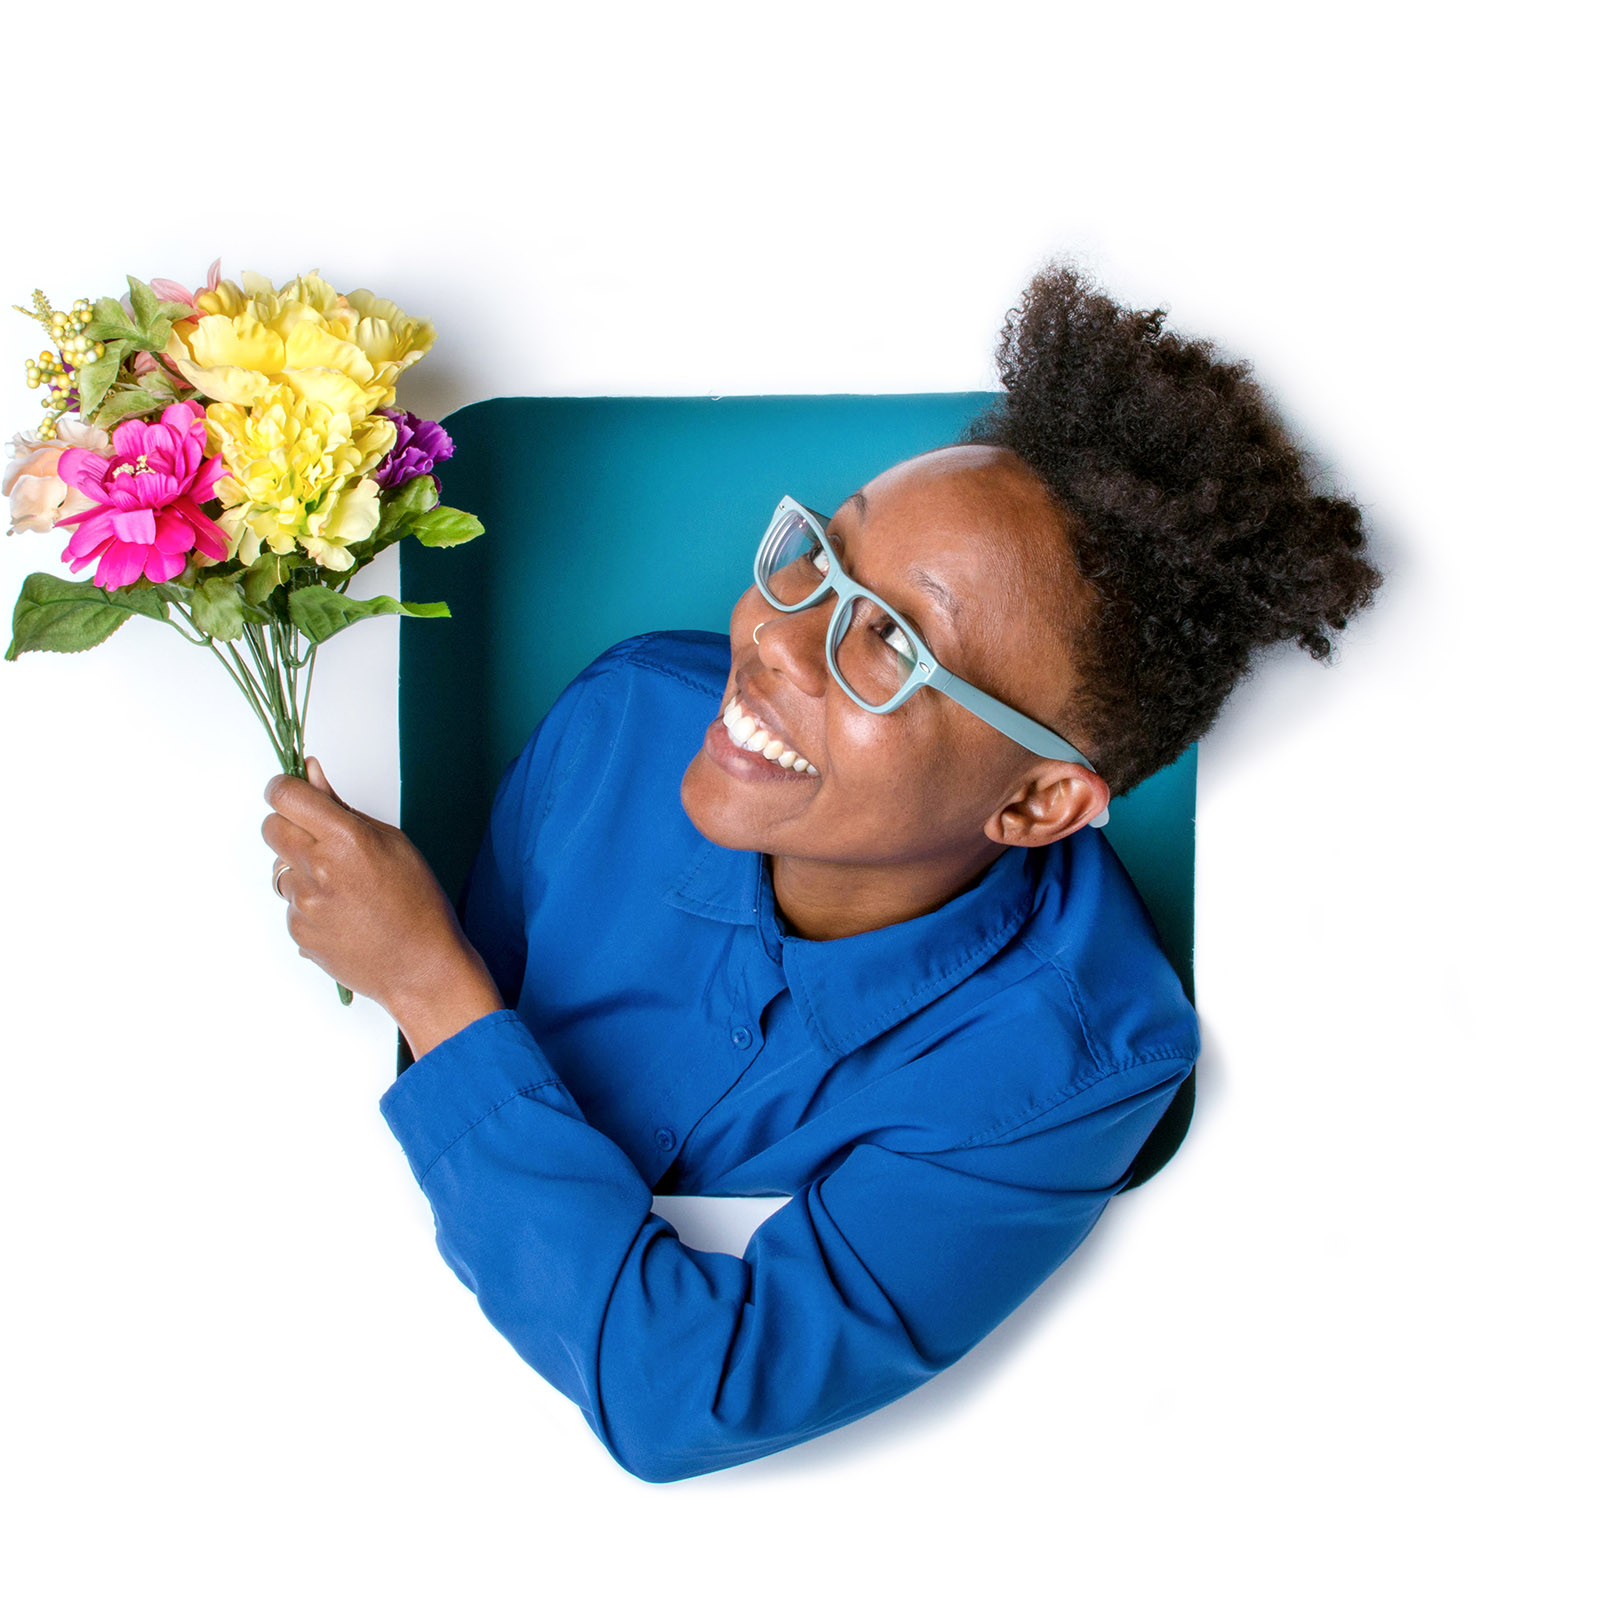 kat-with-flowers.jpg